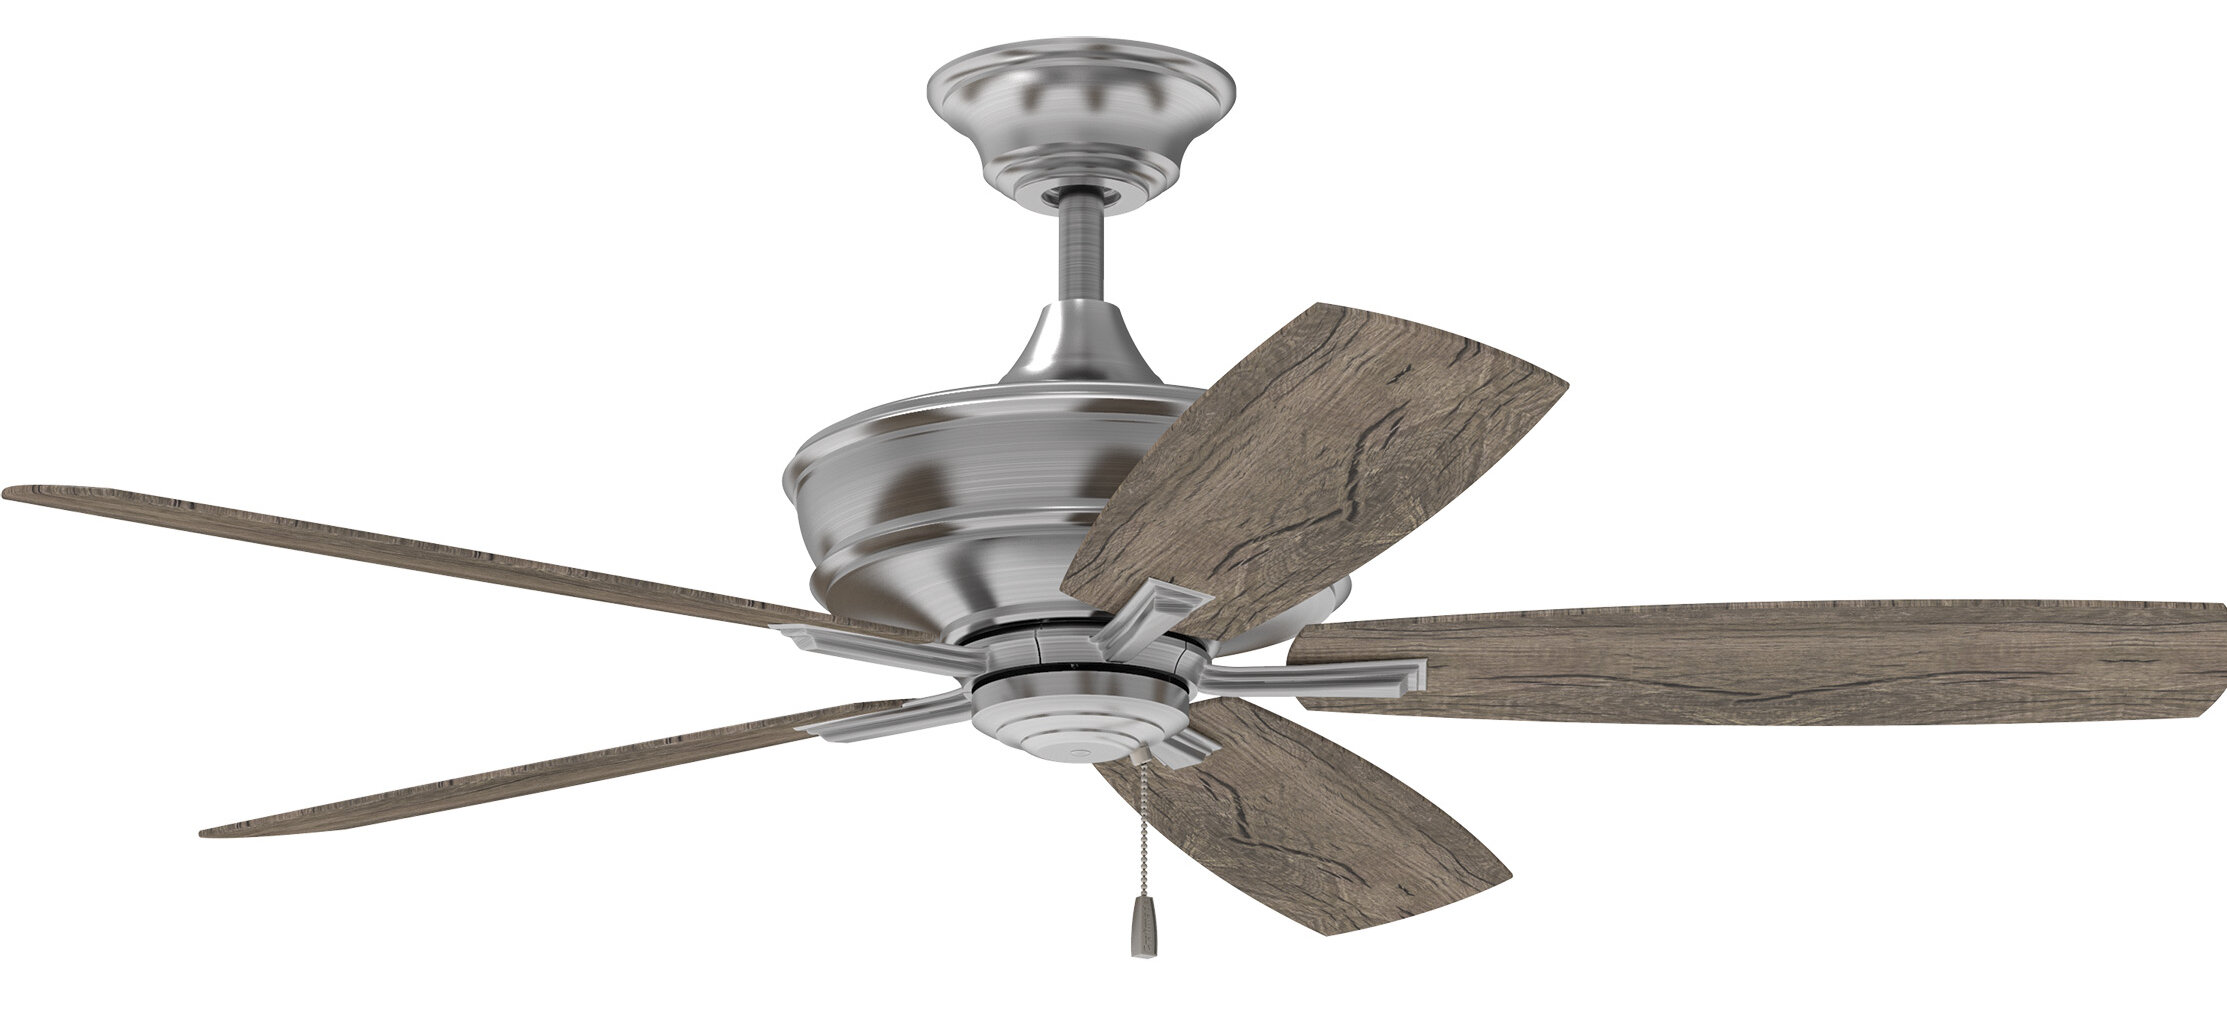 Install A Ceiling Fan Remote Control You May Also Need To Replace